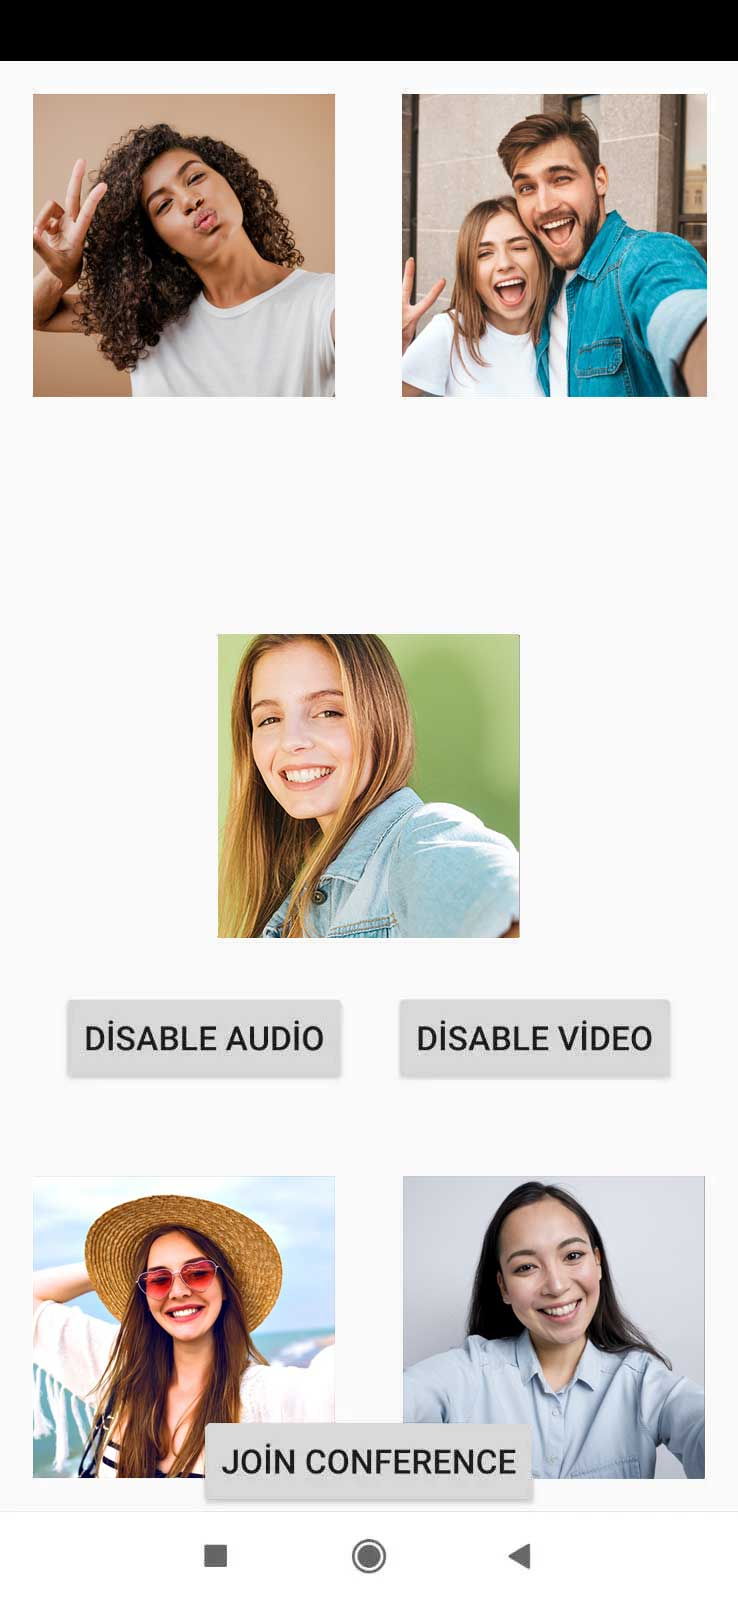 How to Use WebRTC SDK in Native Android App? 9